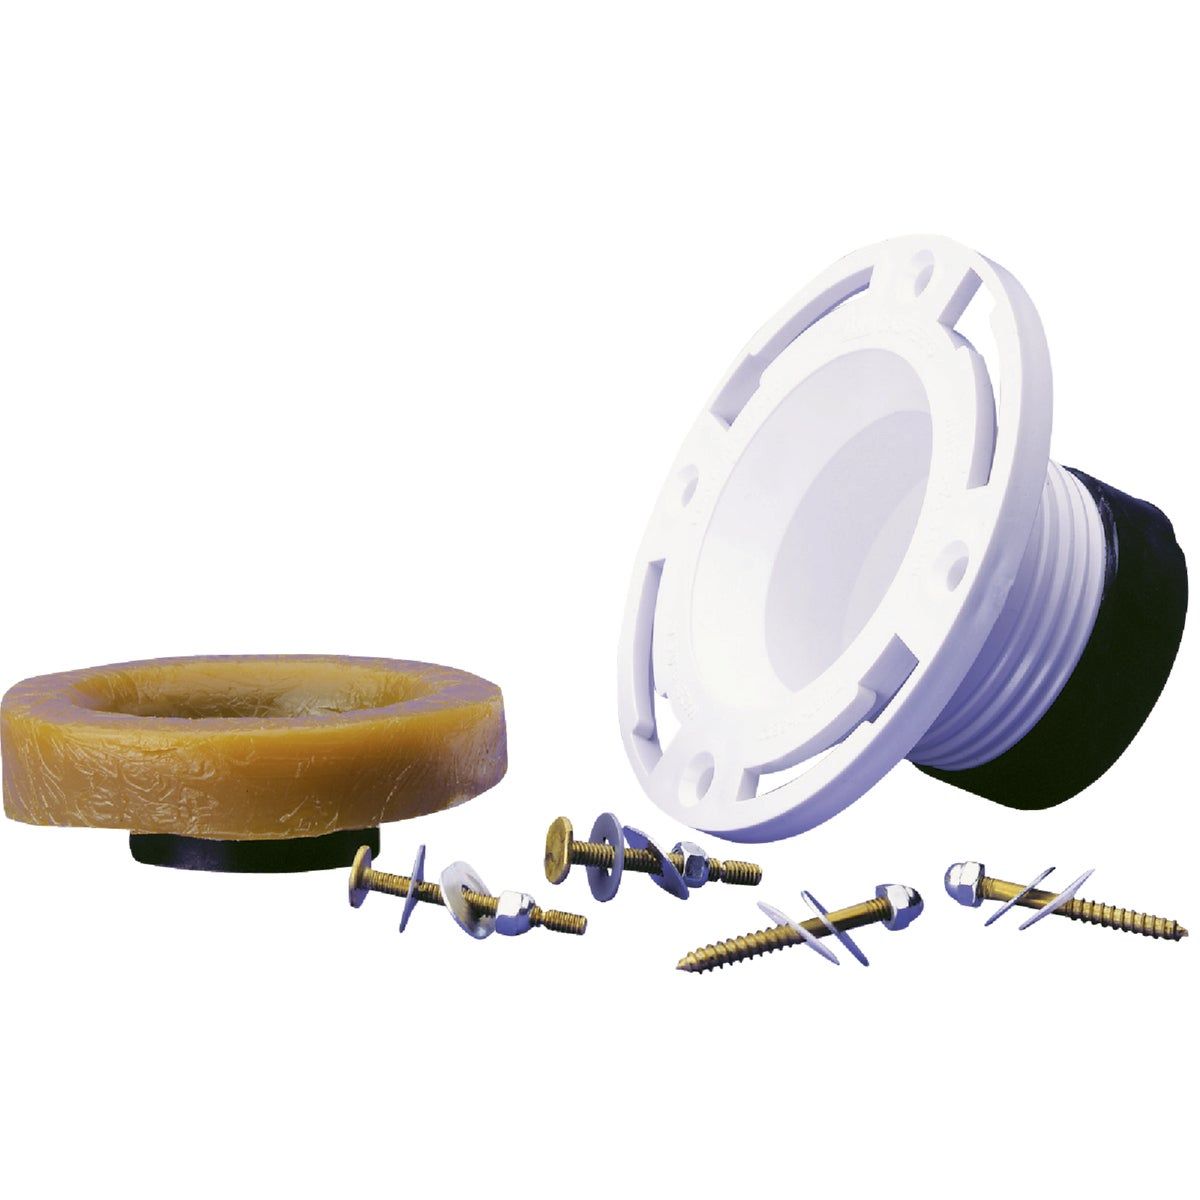 PVC FLANGE REPAIR KIT - 43652 by Oatey Scs